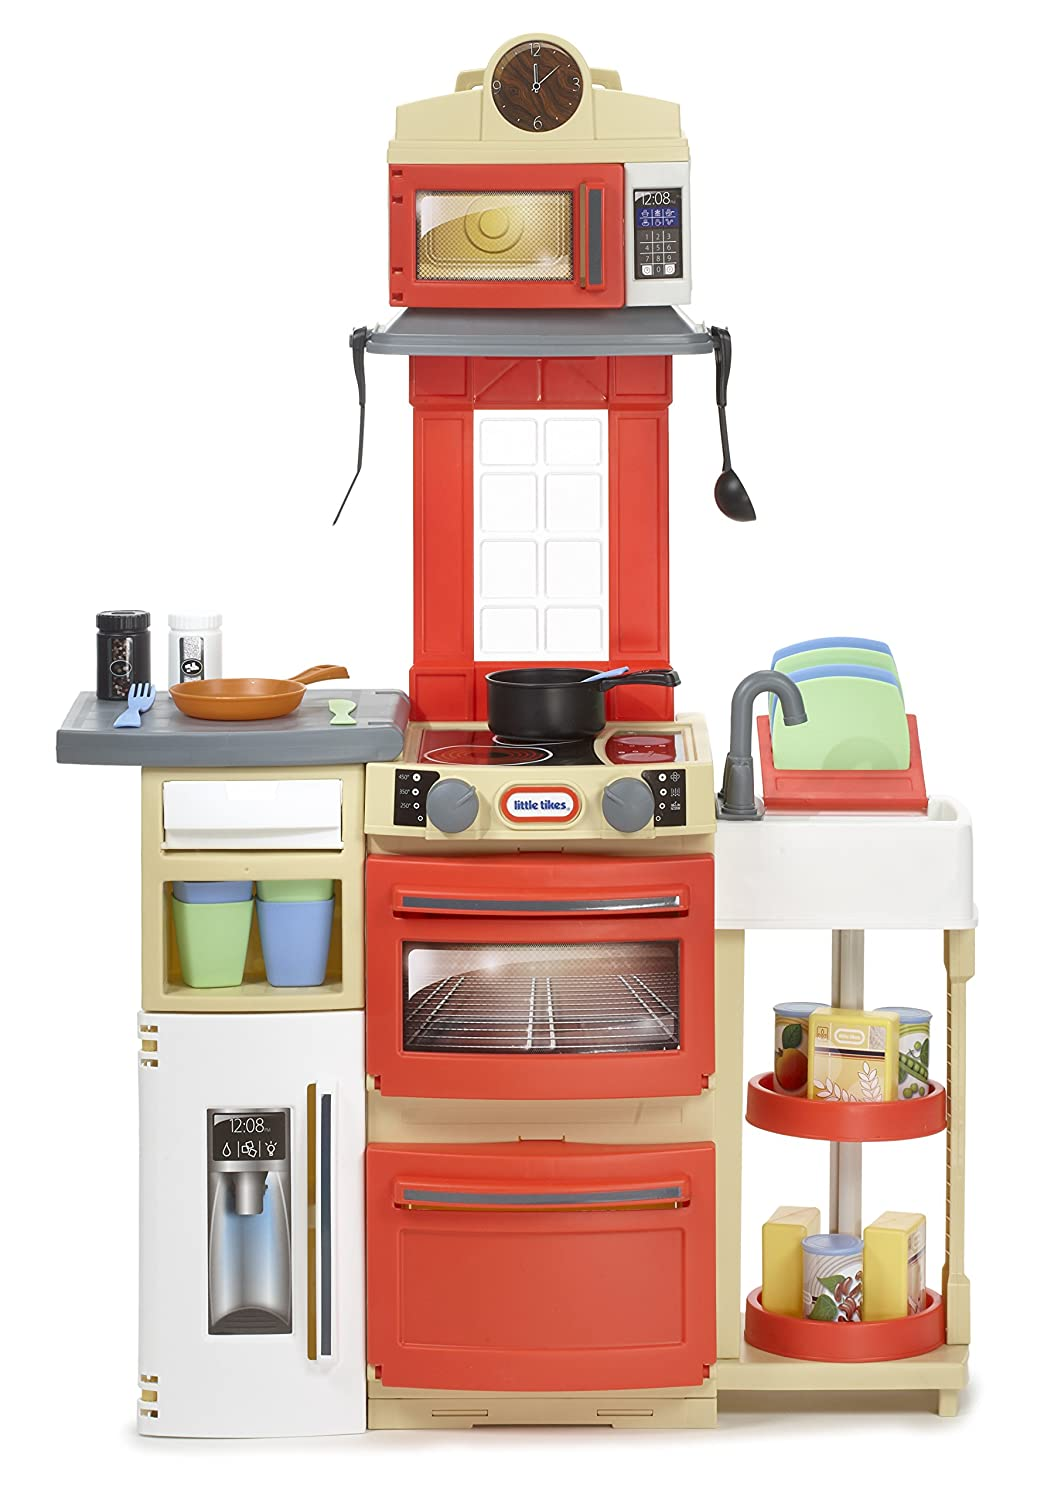 Little Tikes Cook \'n Store Kitchen (Red): Little Tikes: Amazon.co.uk ...